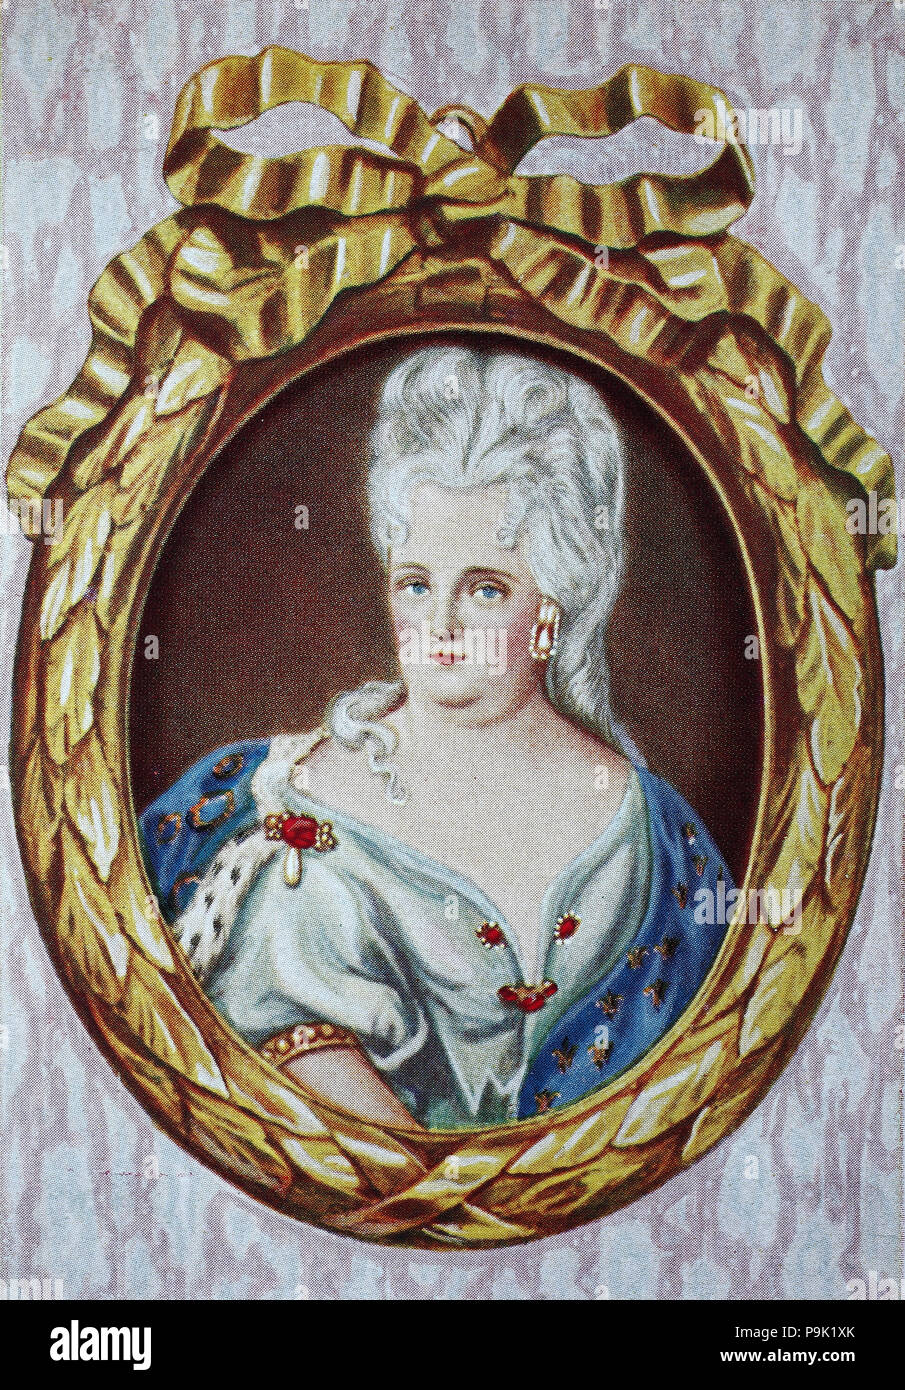 Princess Elisabeth Charlotte, German: Prinzessin Elisabeth Charlotte von der Pfalz, nicknamed Lieselotte, 27 May 1652– 8 December 1722, was a German princess and, as Madame, the second wife of Philippe I, Duke of Orléans, younger brother of Louis XIV of France, and mother of France's ruler during the Regency, digital improved reproduction of an original print from the year 1900 - Stock Image